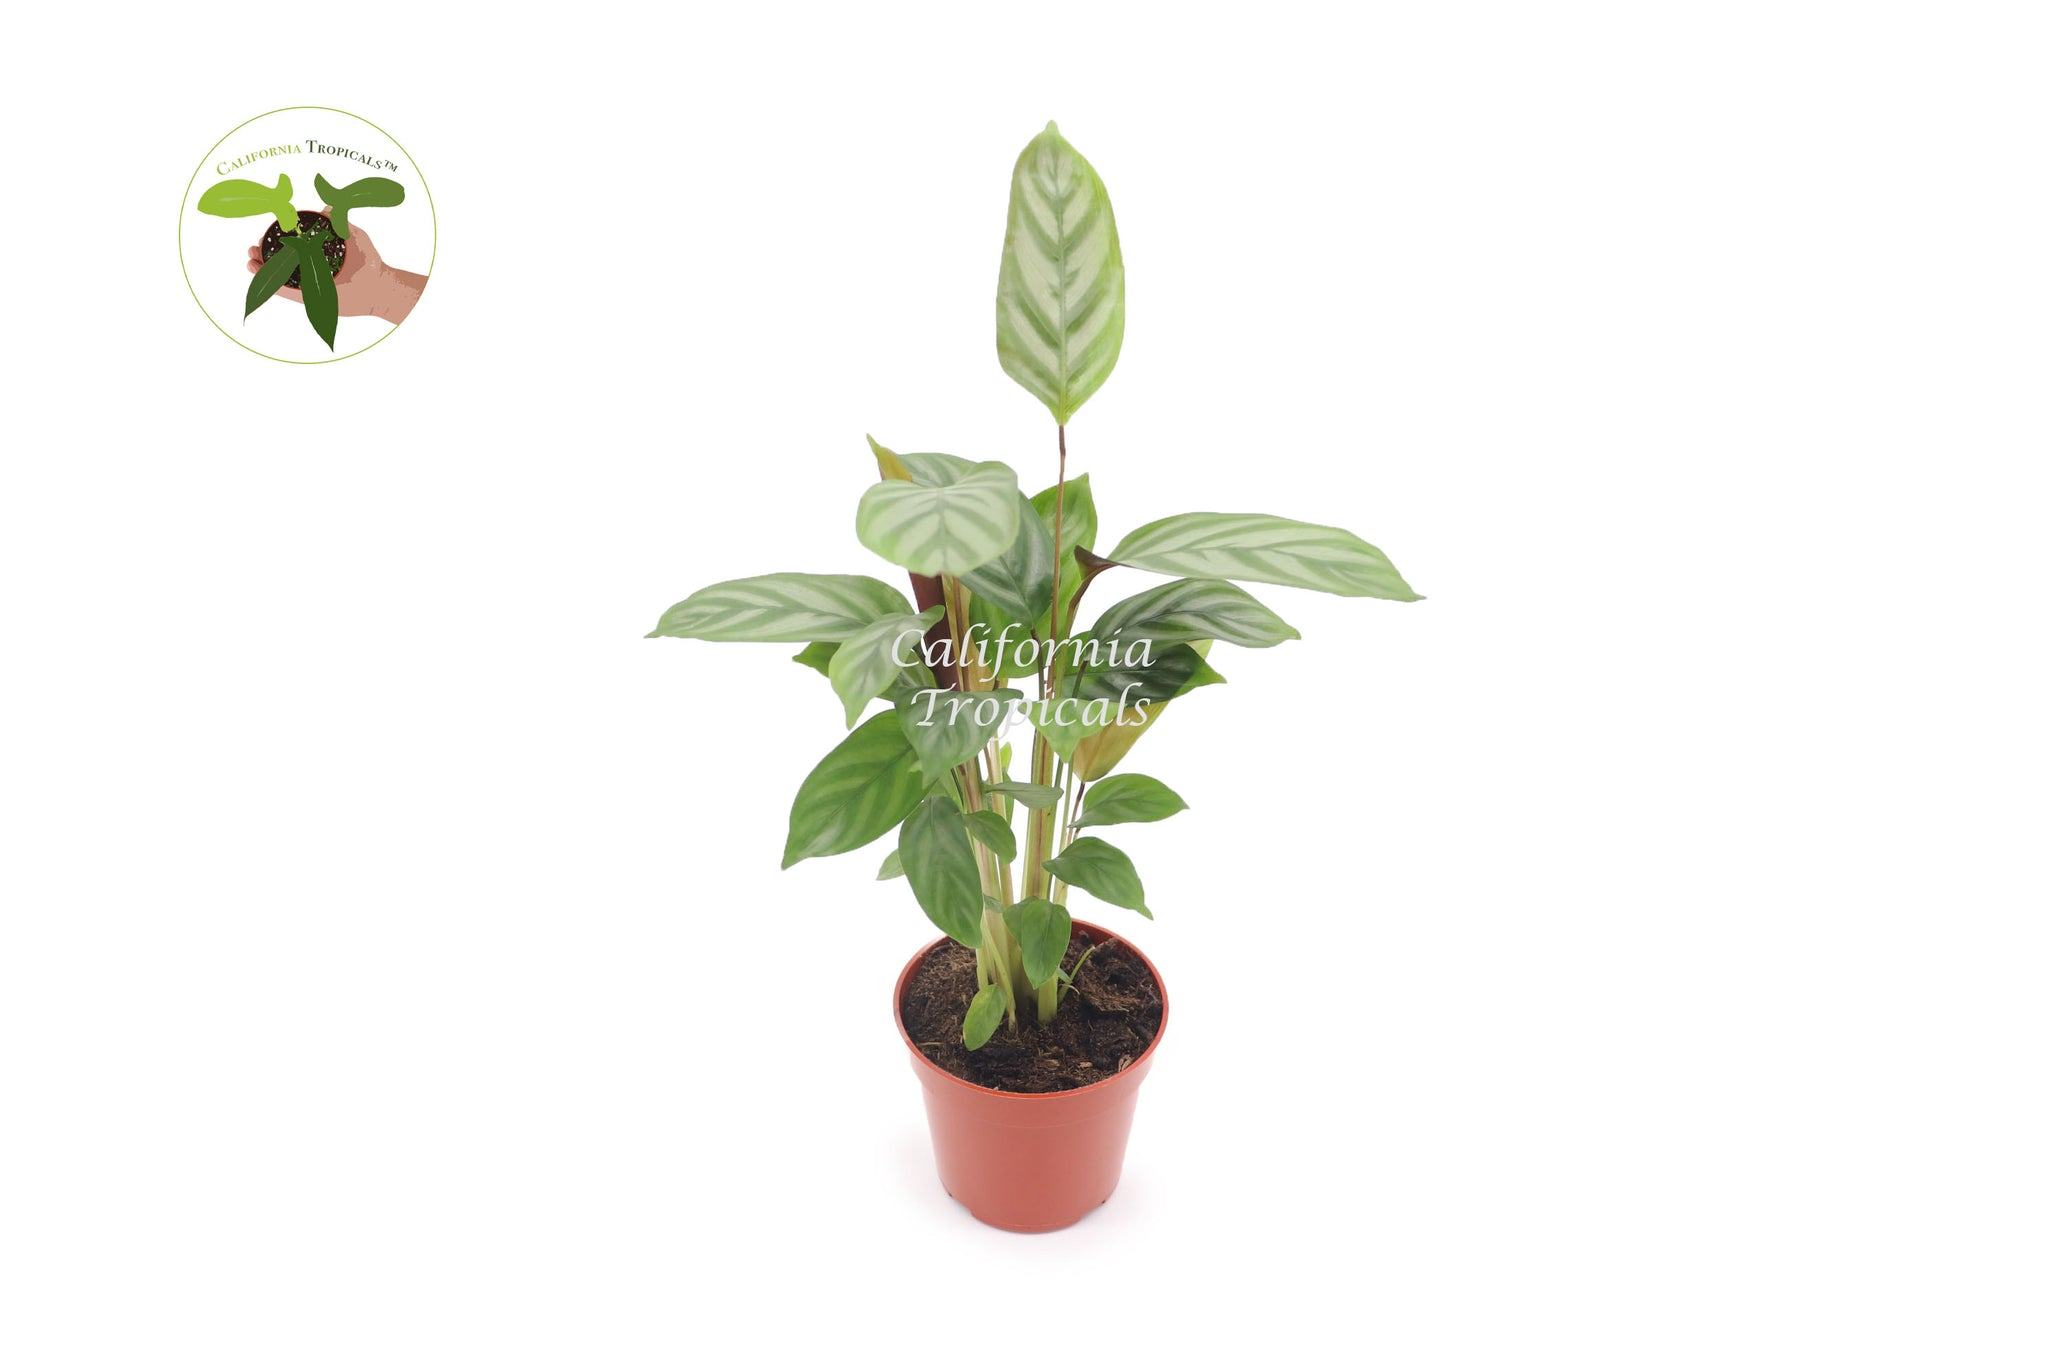 "Calathea Ctenanthe Setosa Exotica  - 4"" from California Tropicals"